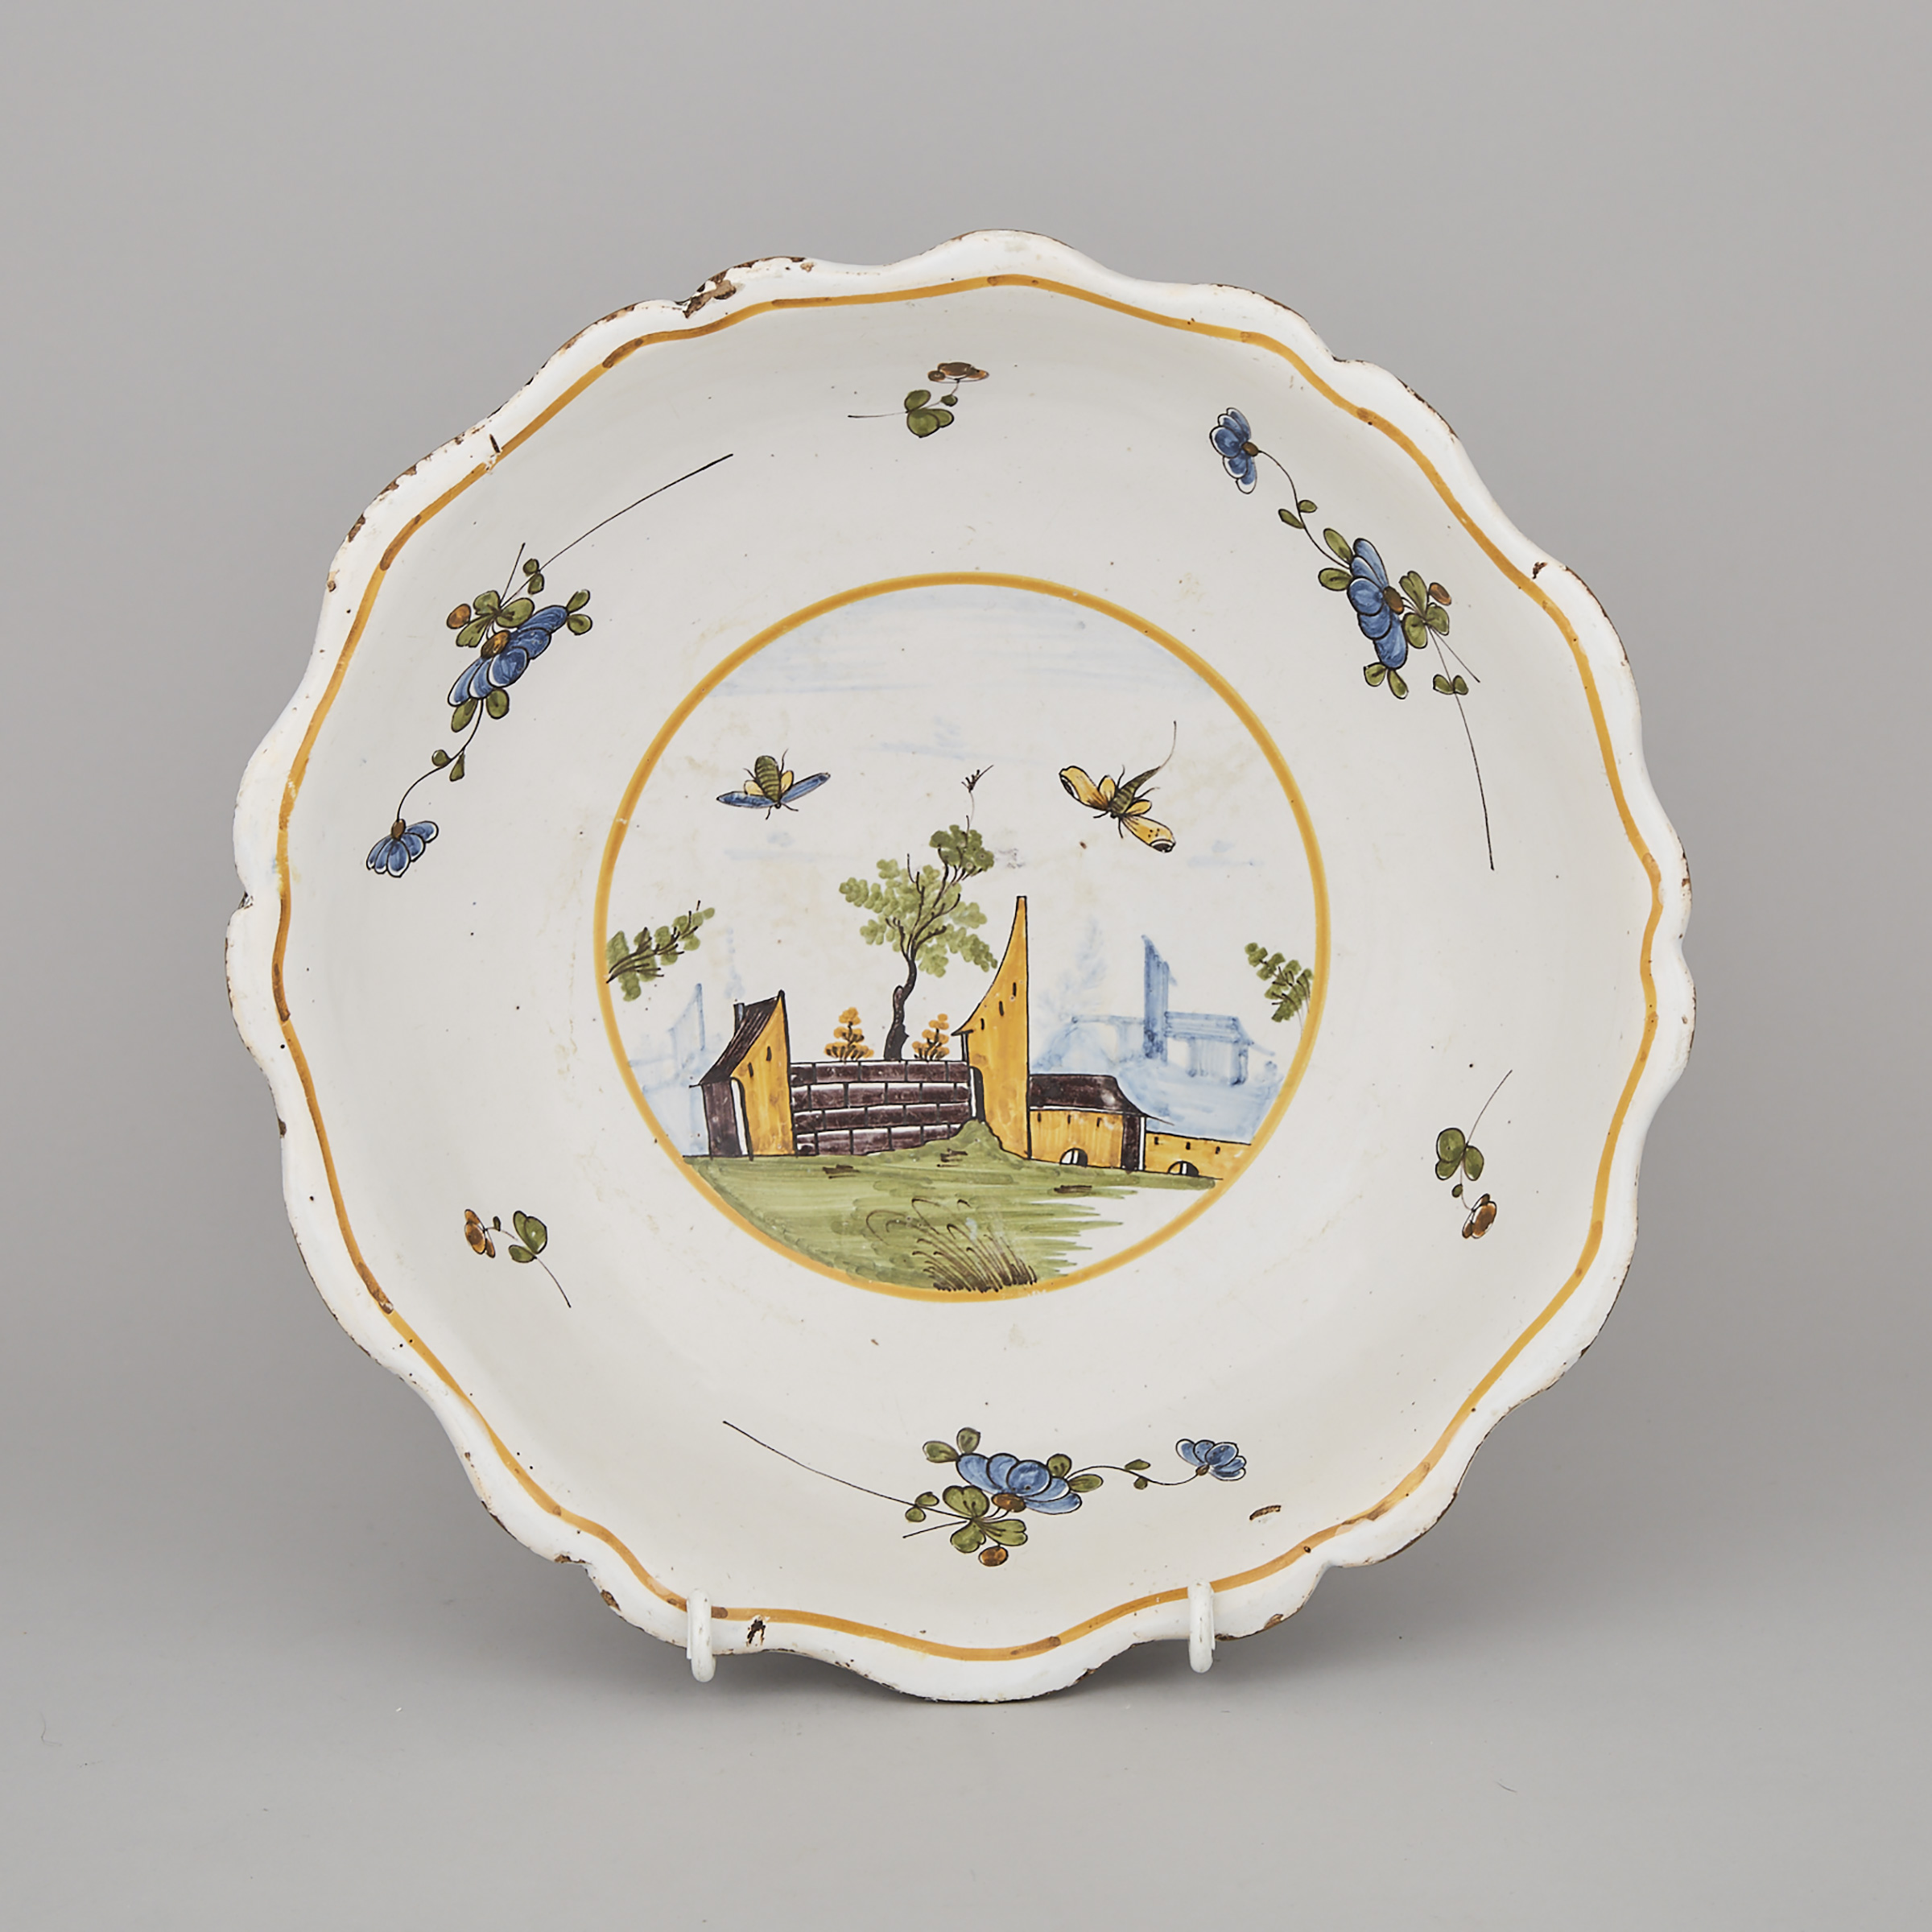 French Faience Polychrome Basin, late 18th/early 19th century